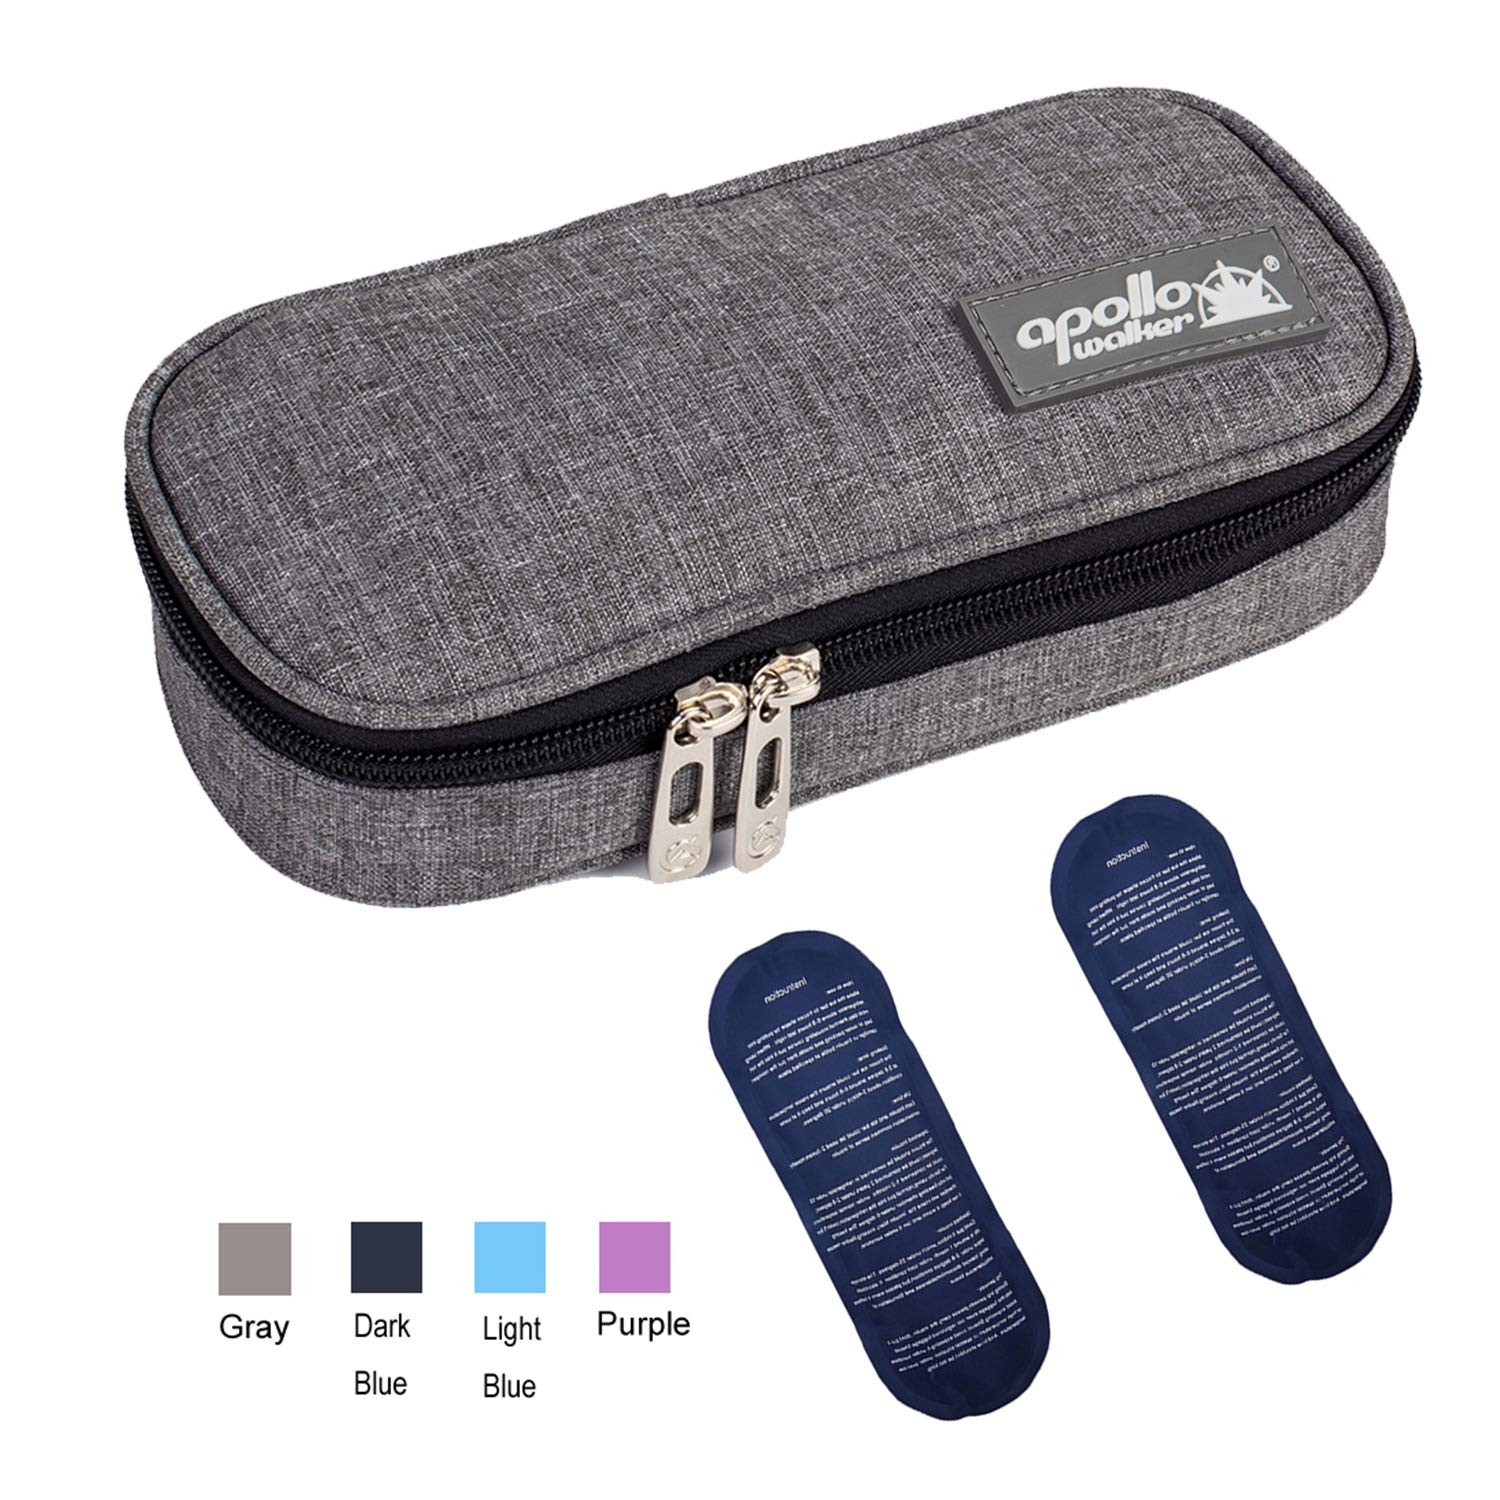 Apollo Walker Insulin Cooler Travel Case Diabetic Medication Cooler with 2 Ice Packs and Insulation Liner (Gray)